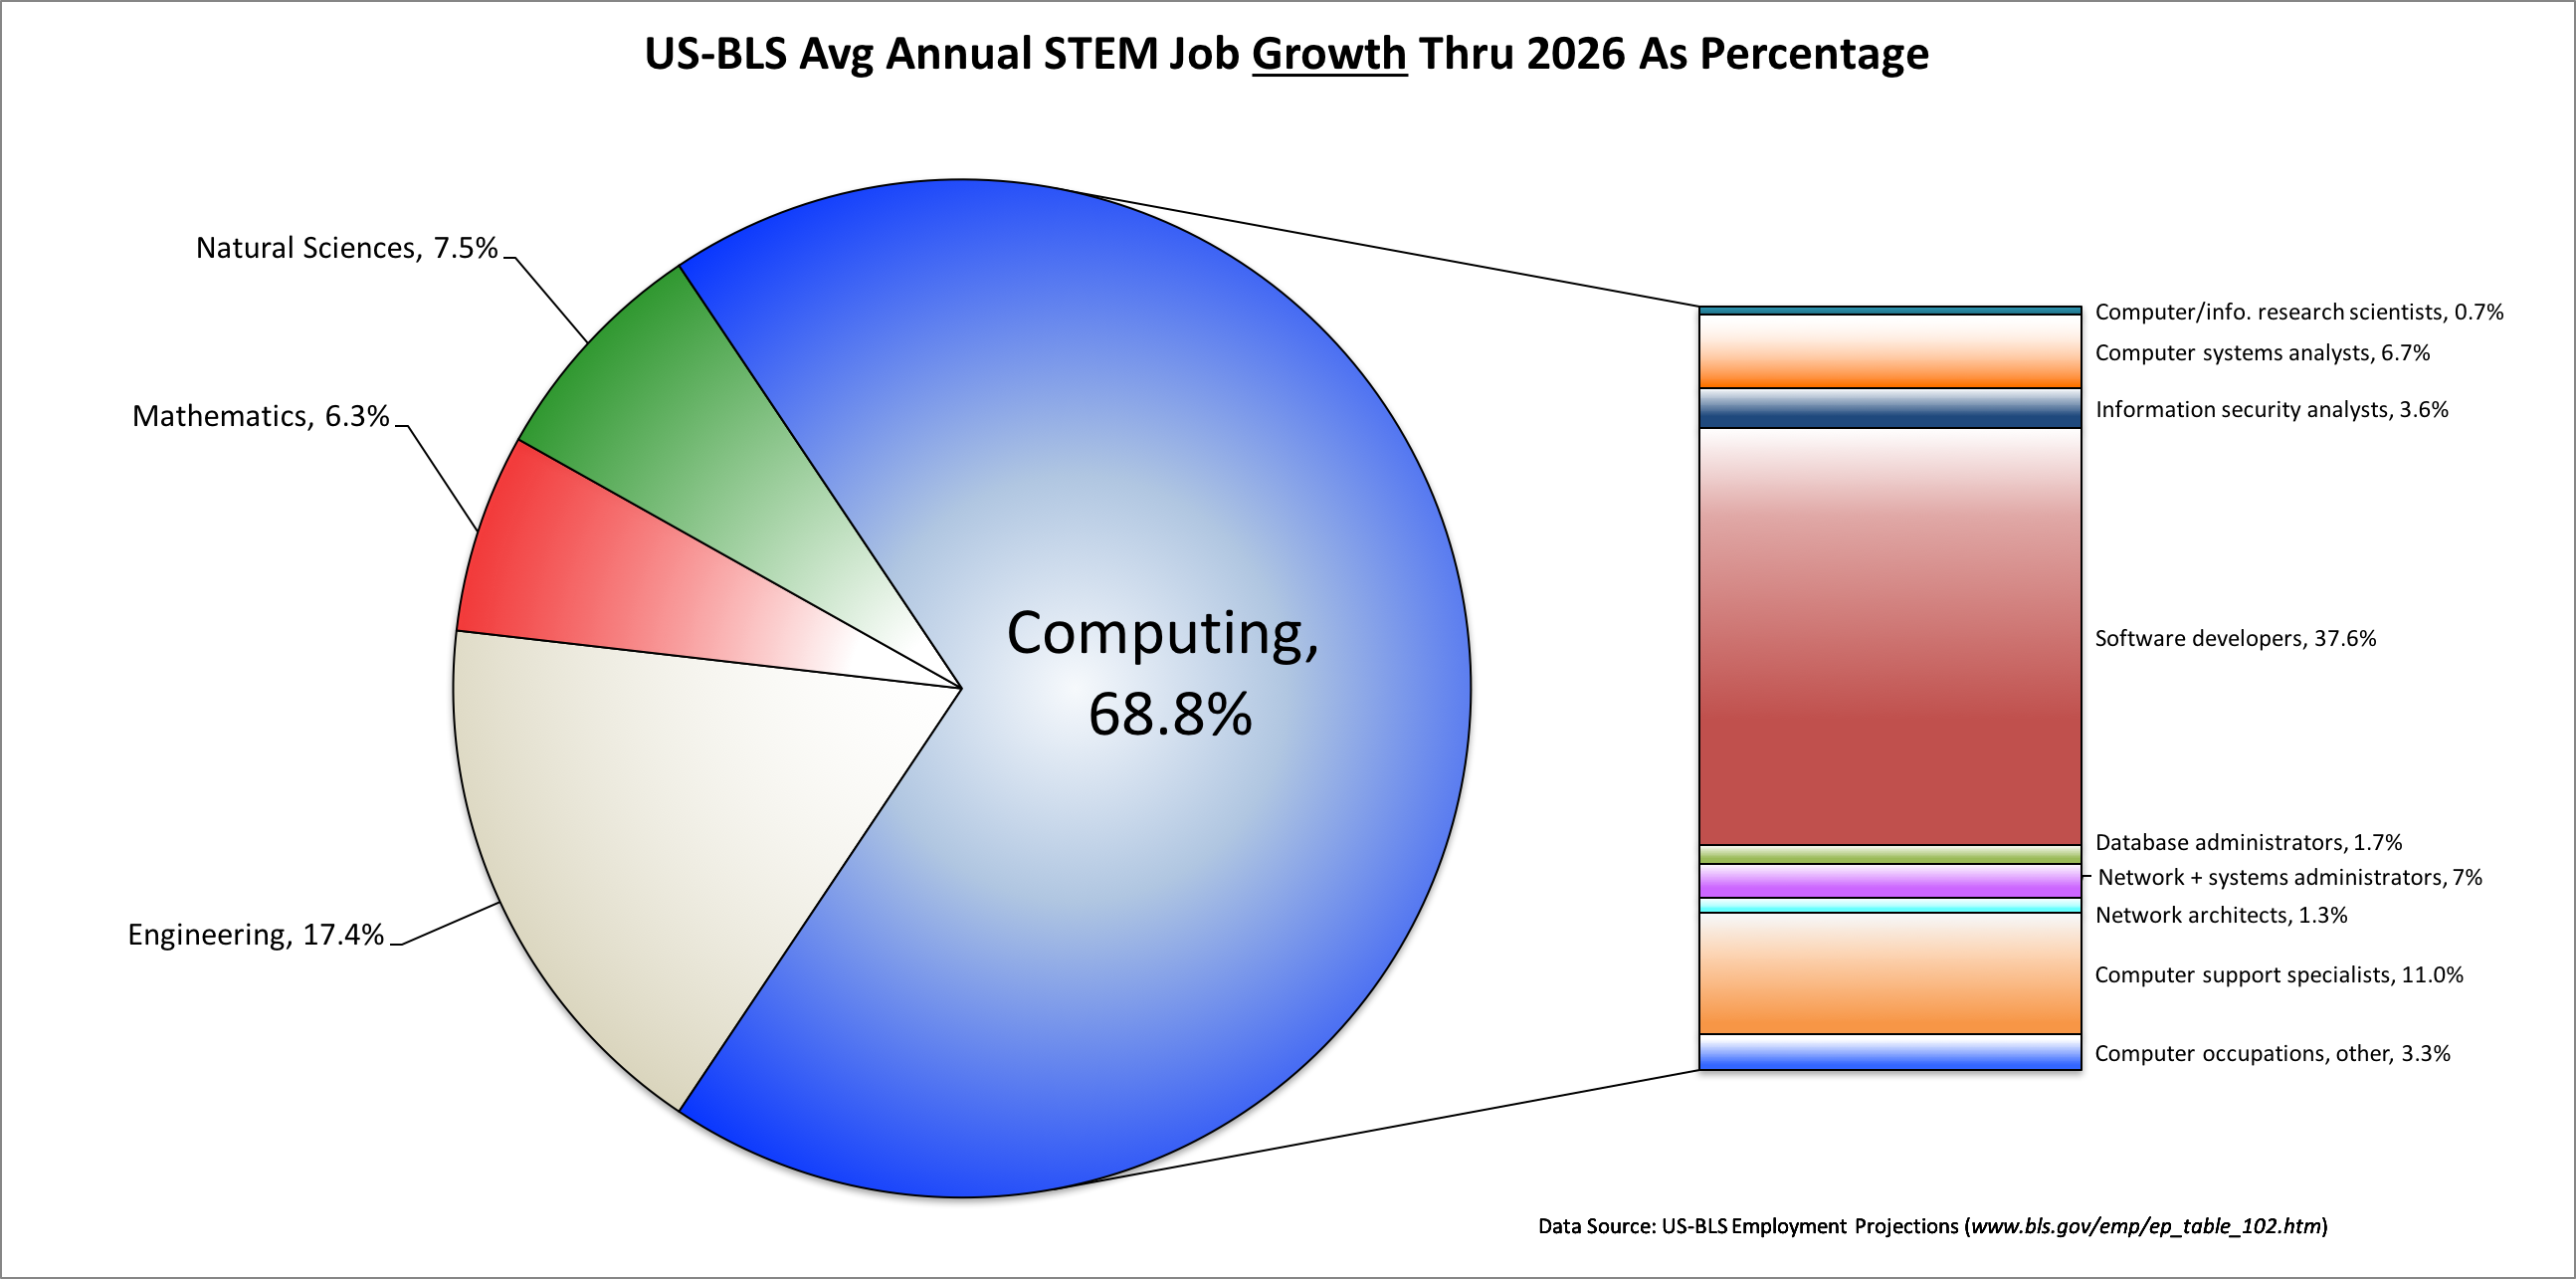 The U.S. Bureau of Labor predicts that between now and 2026,               76% of the new STEM jobs will be computing jobs